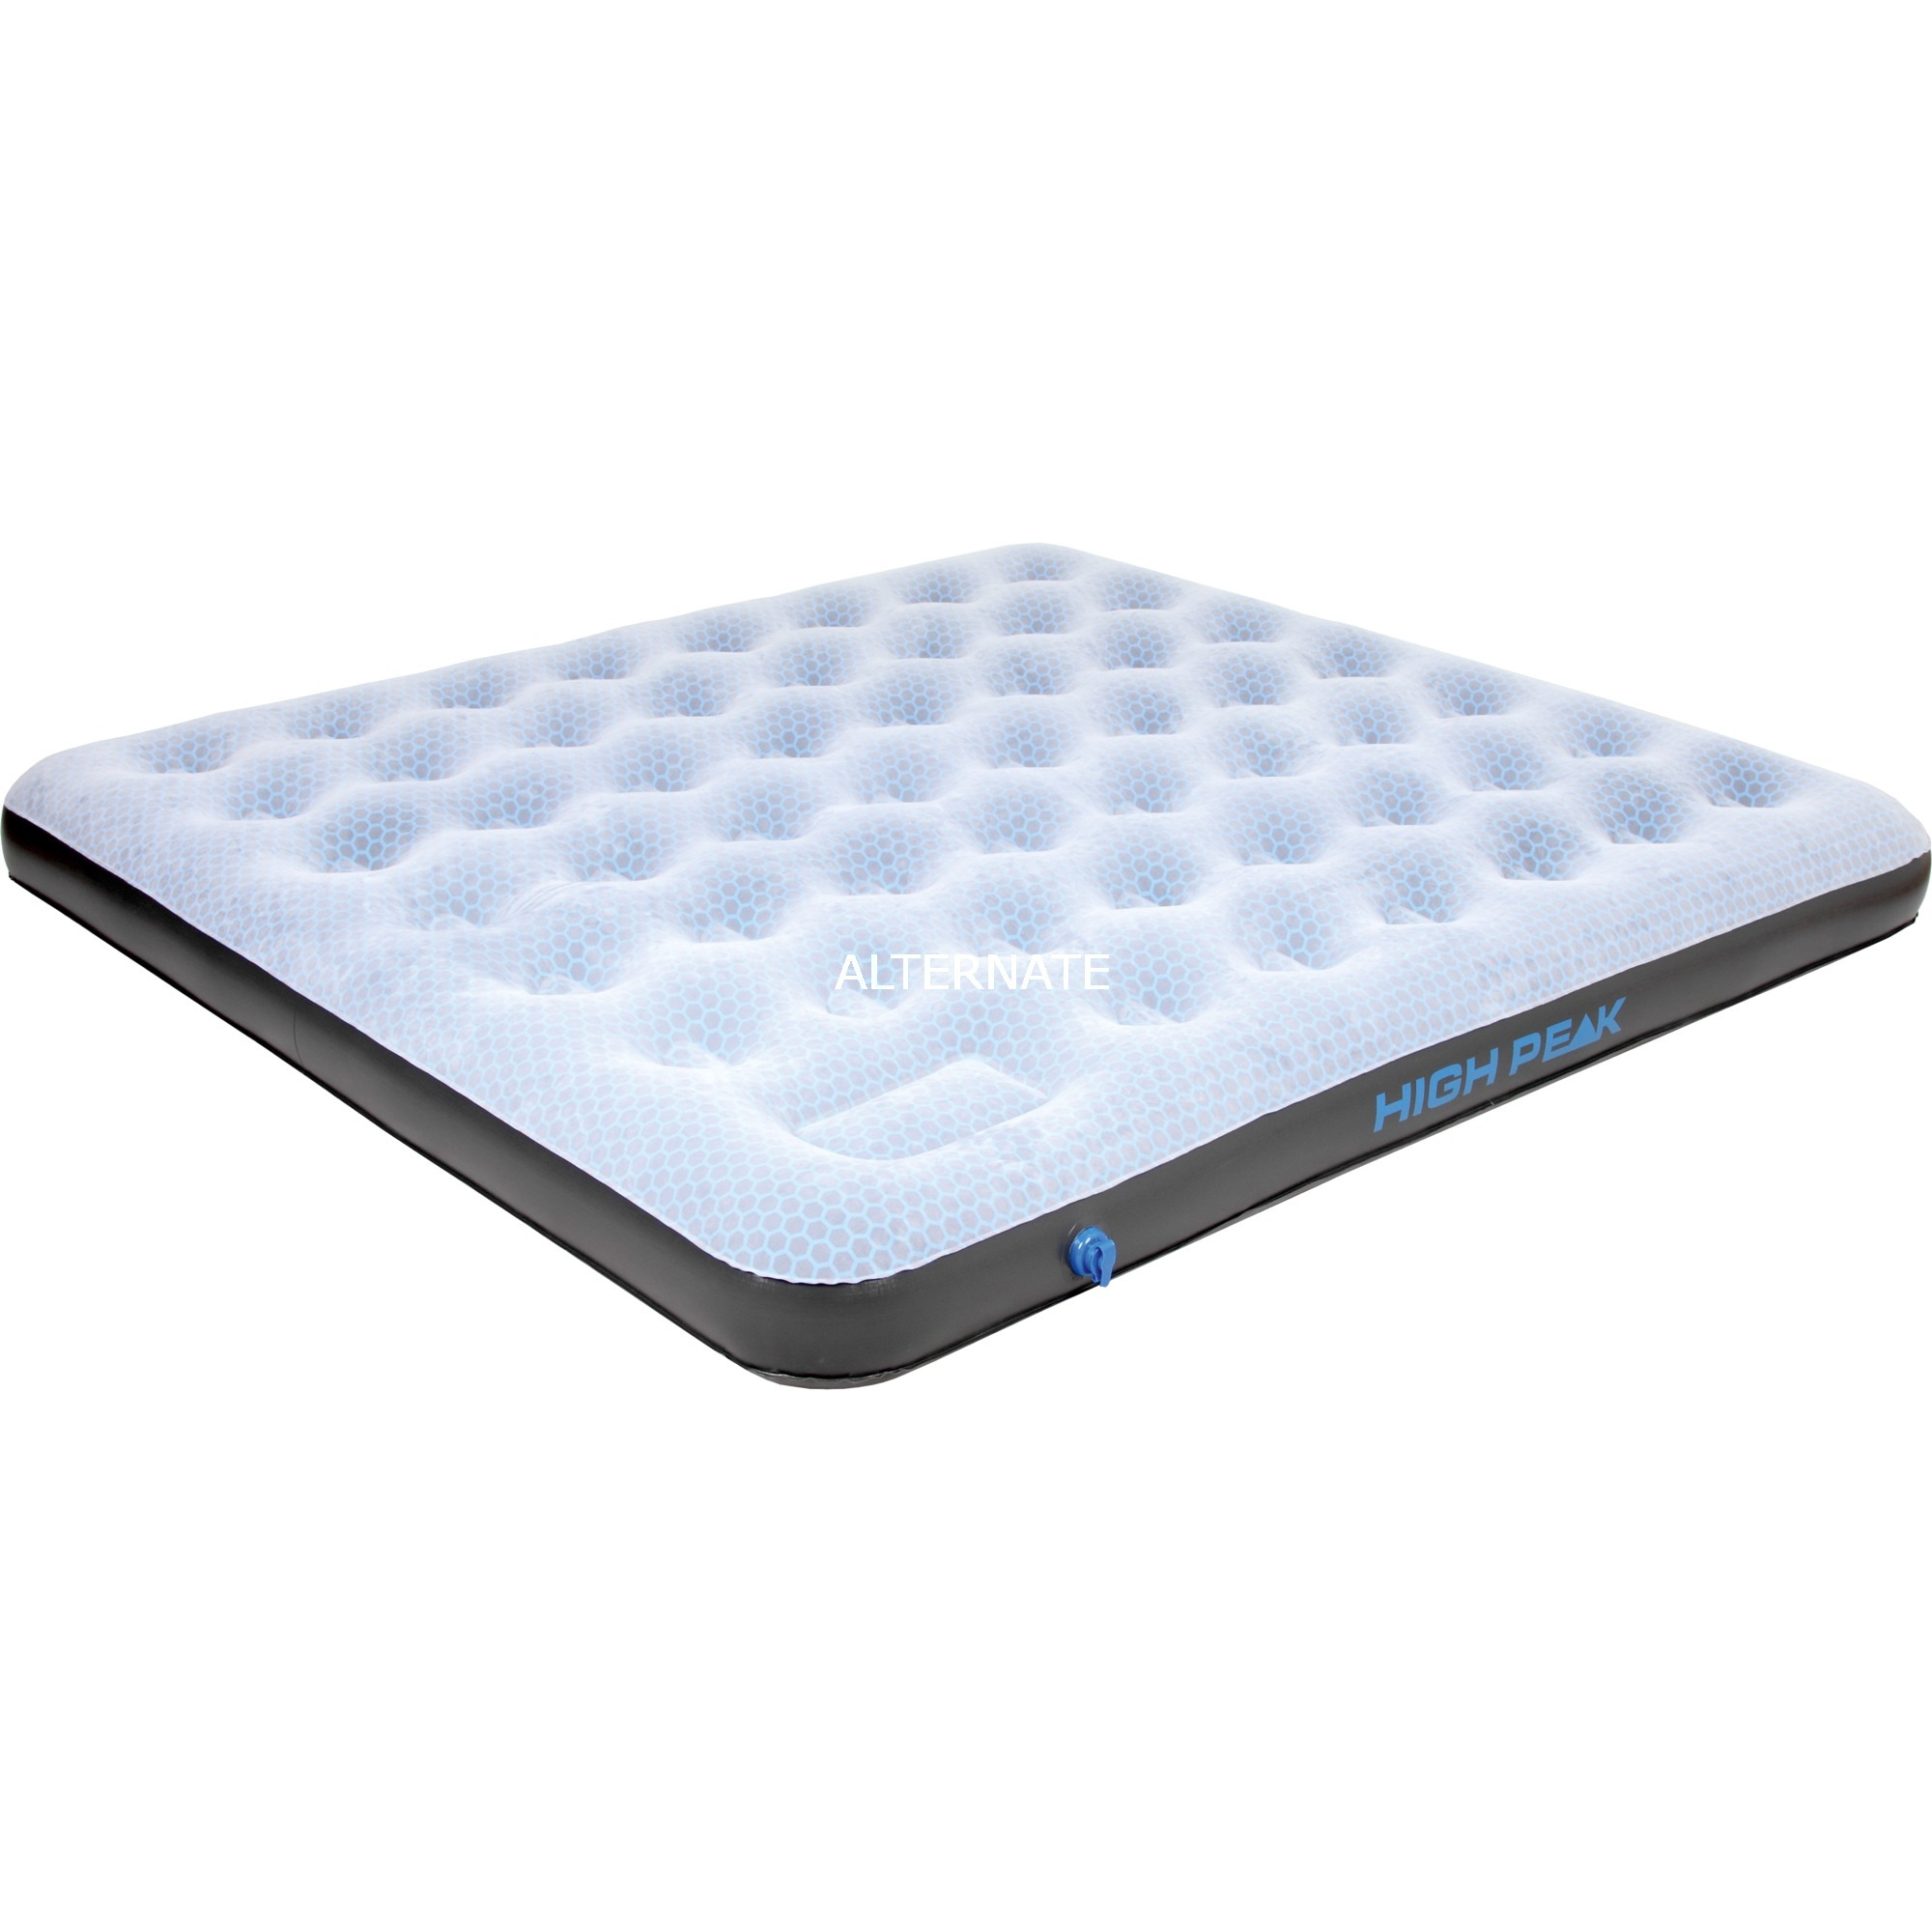 Image of Air bed King Comfort Plus 40027, Camping-Luftbett